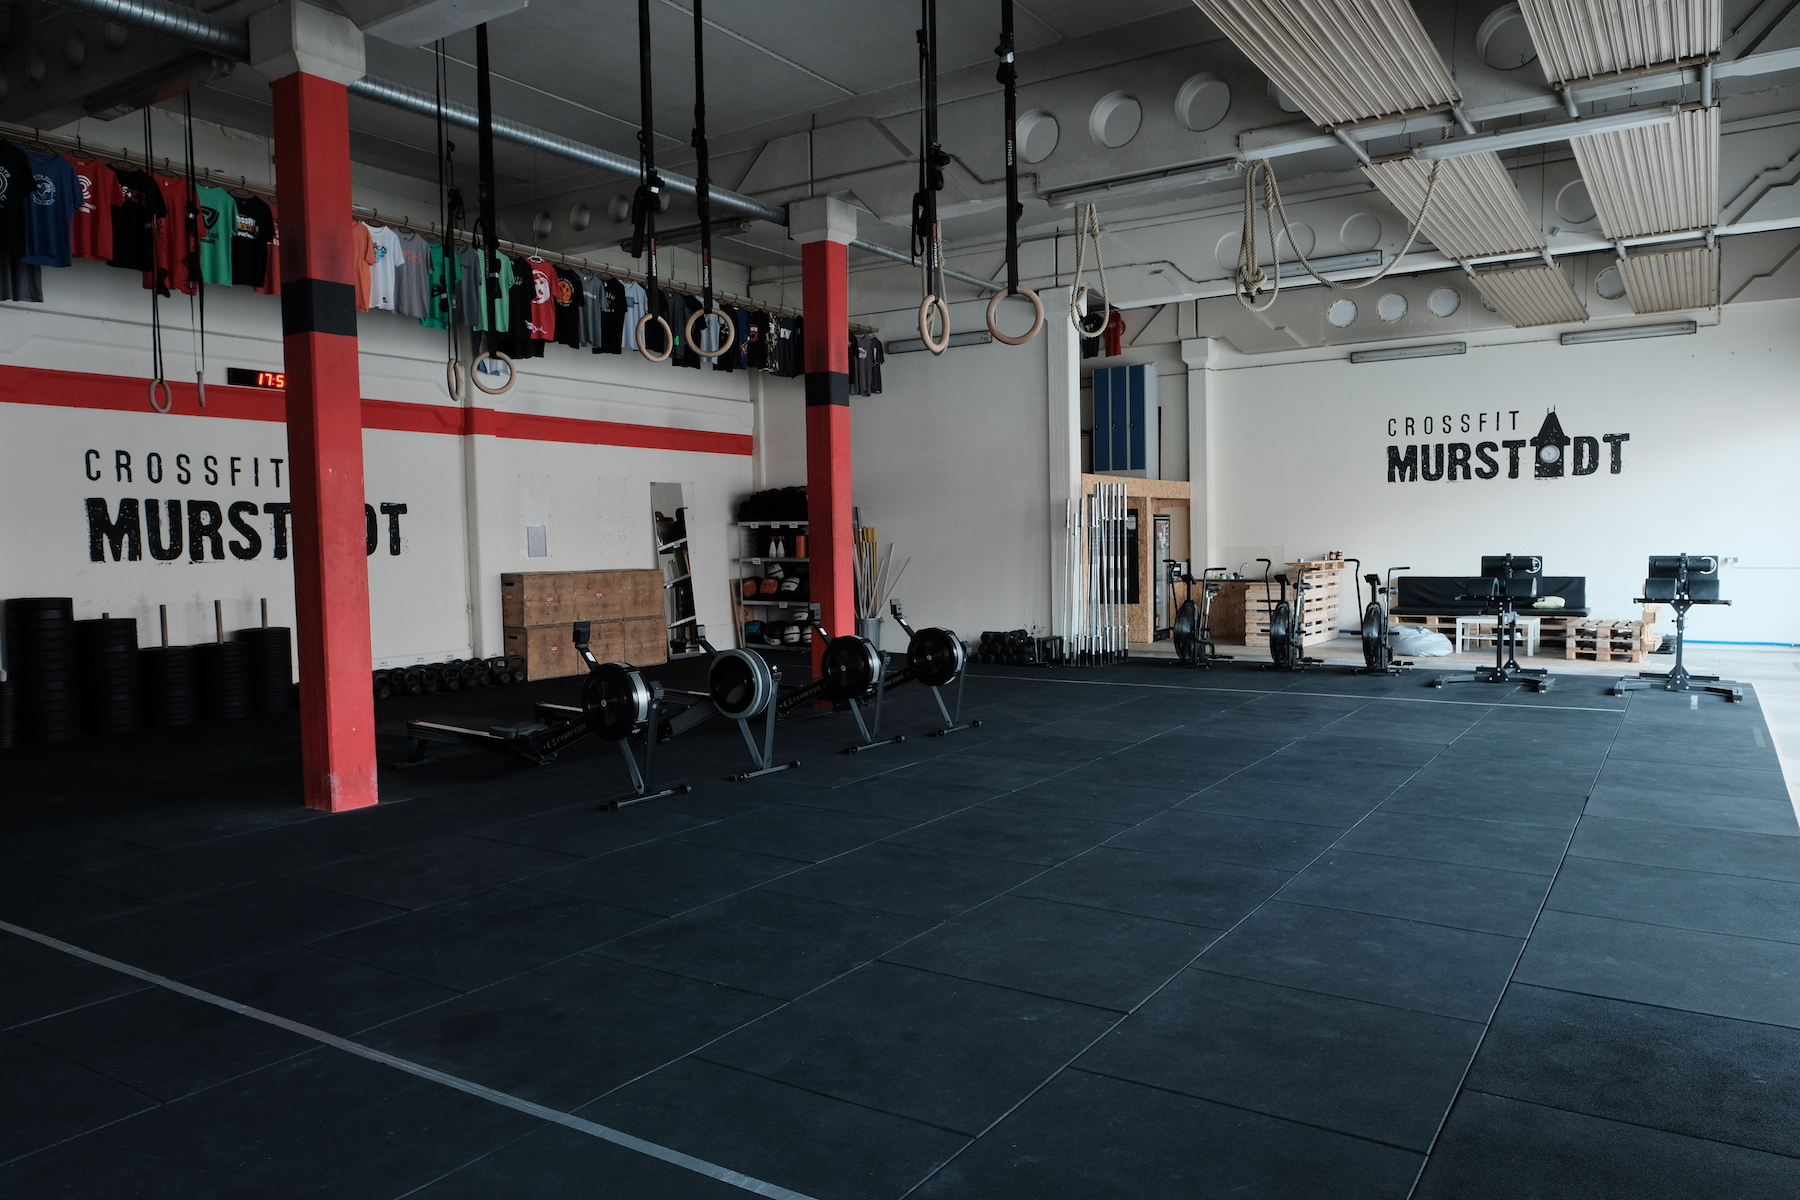 My most favorite playground - Crossfit Murstadt